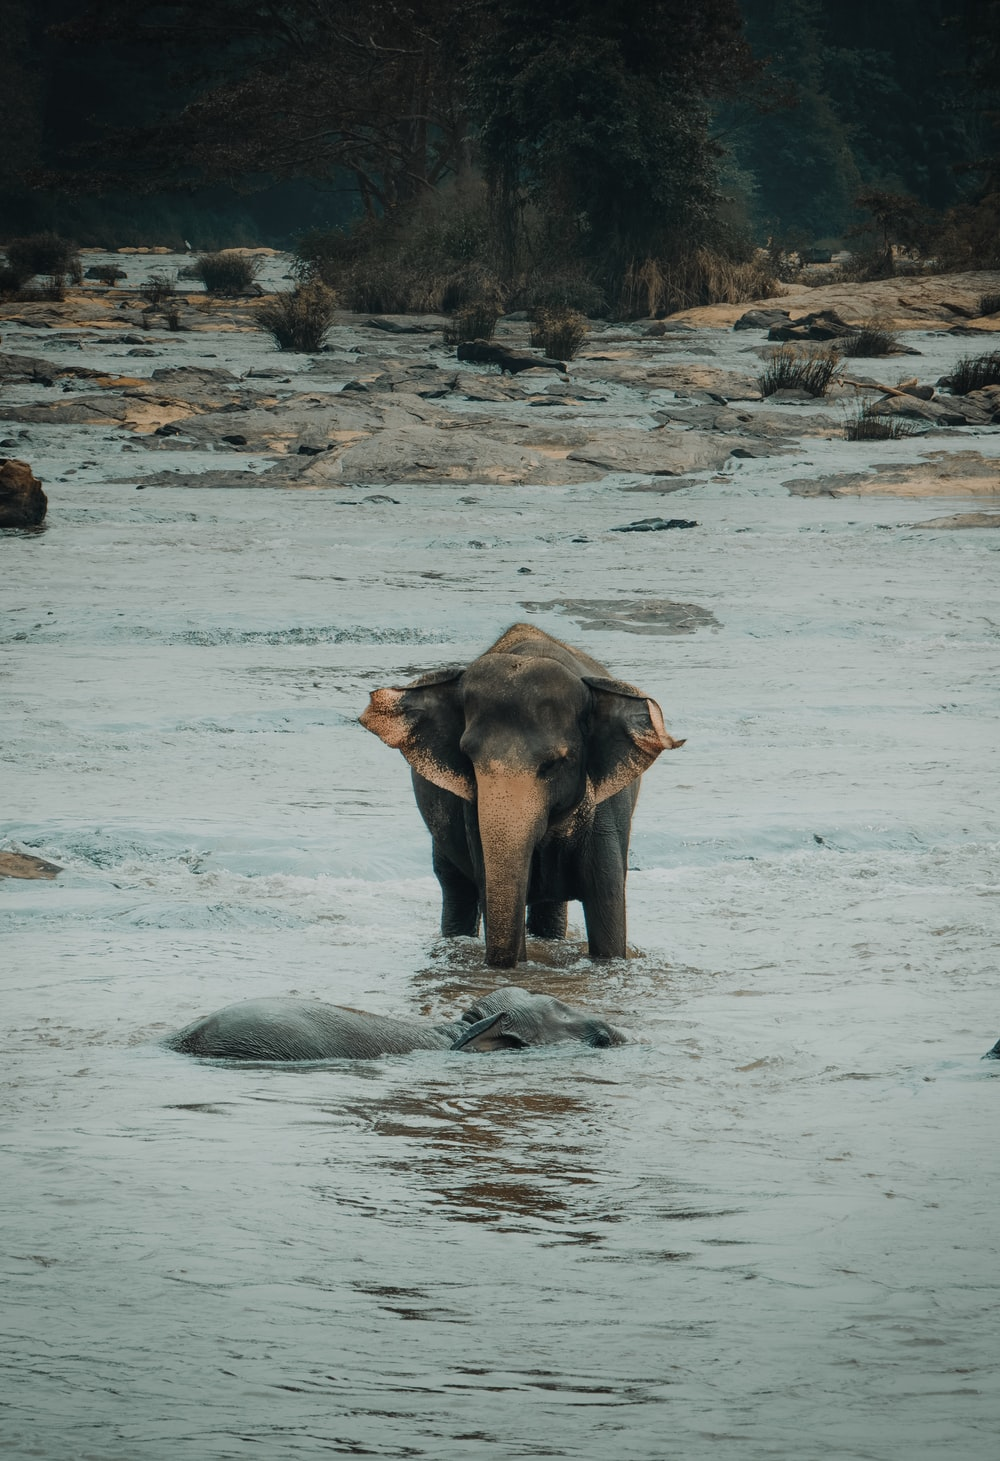 elephant calf walking on body of water